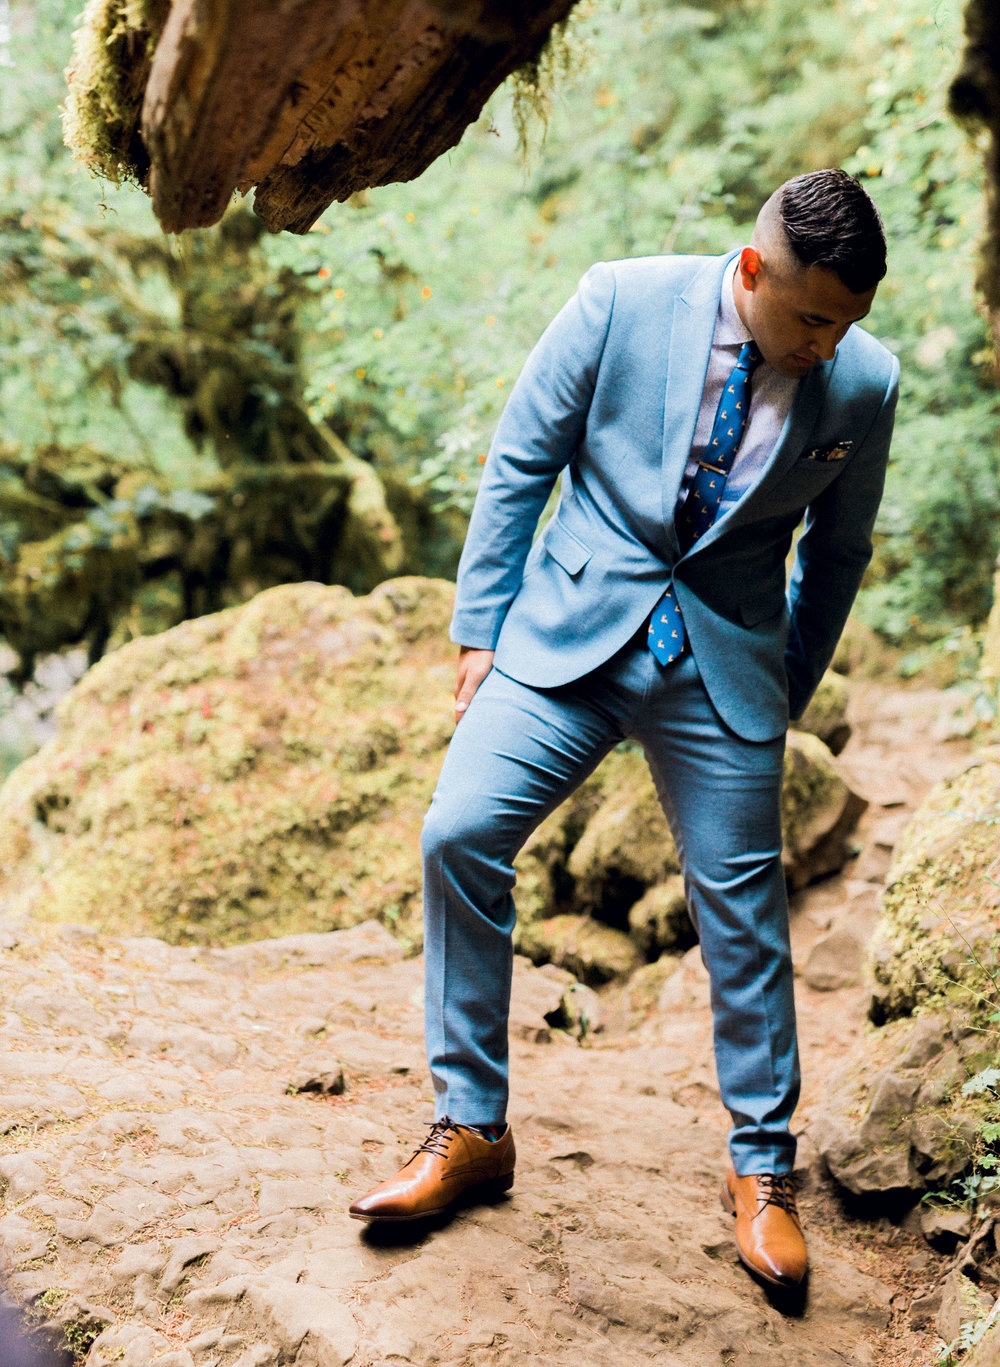 abiqua_falls_elopement_wedding_oregon_photographer_videographer_021.jpg